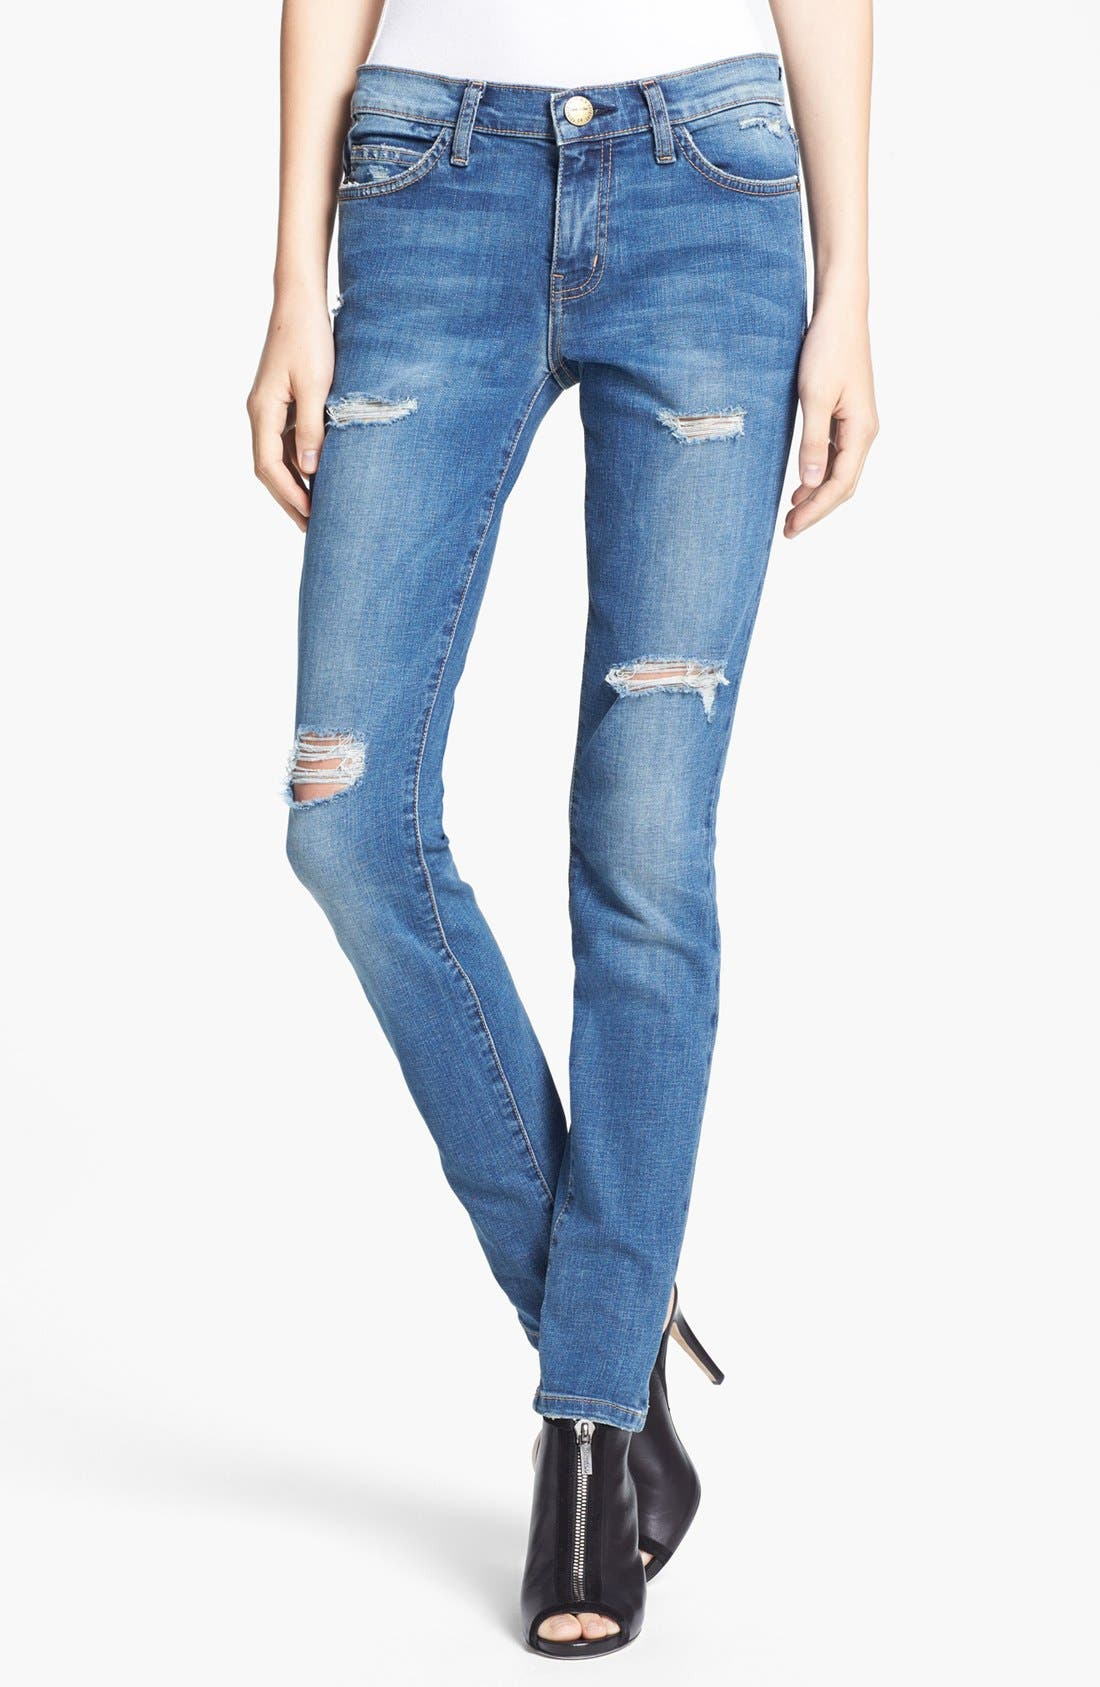 Alternate Image 1 Selected - Current/Elliott 'The Ankle Skinny' Jeans (Borough Destroy)